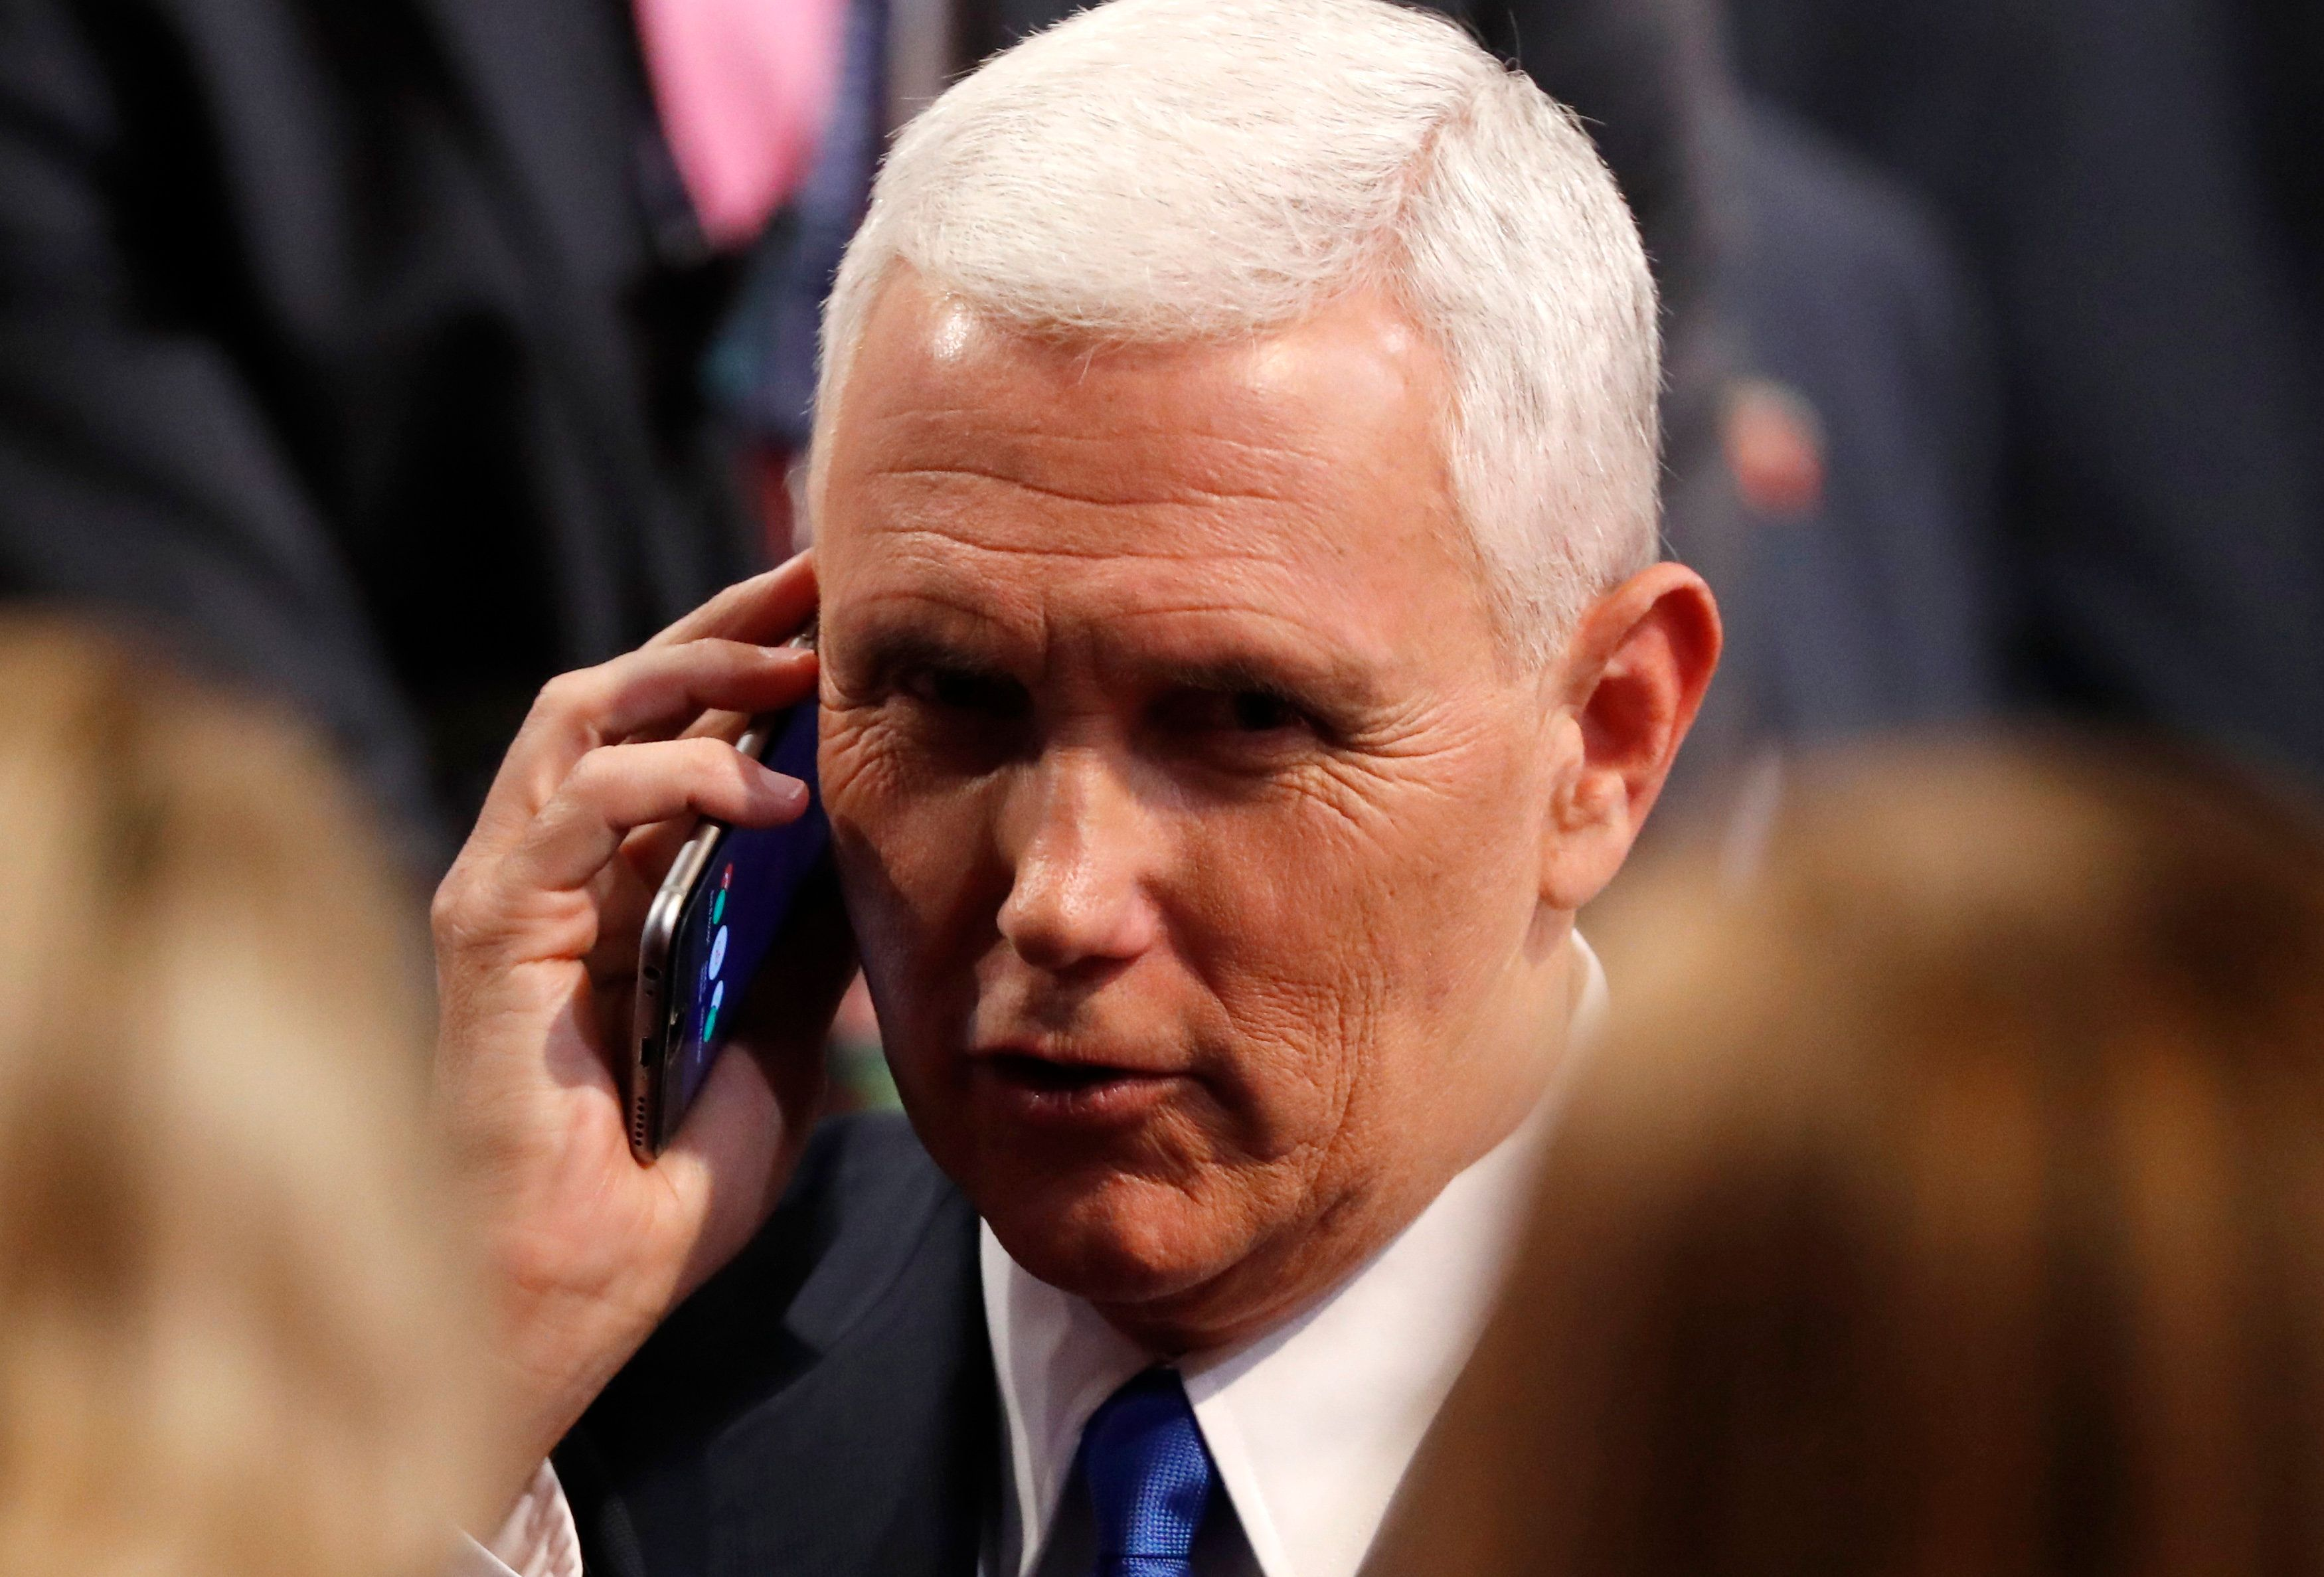 Gov. Mike Pence's (R) public health record in his home state of Indiana lefta lot to be desired.